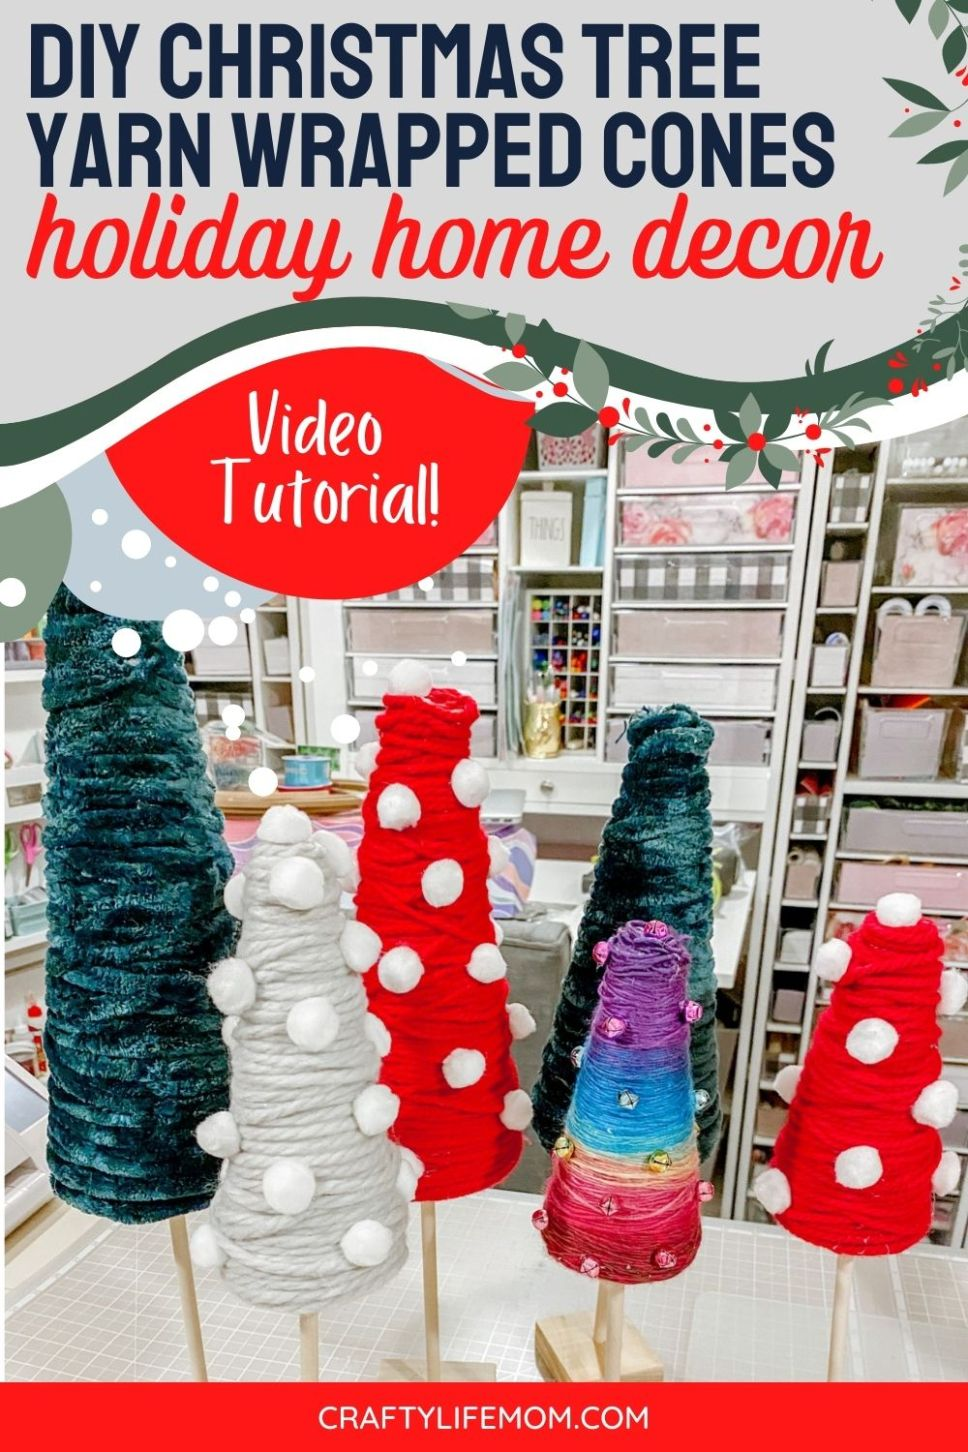 Create beautiful yarn-wrapped Christmas Tree Cones in all sizes and colors for your Christmas holiday home decor. This tutorial shows you step by step how to wrap yarn on different sized cones and add embellishments to fit your personal holiday decorating style.